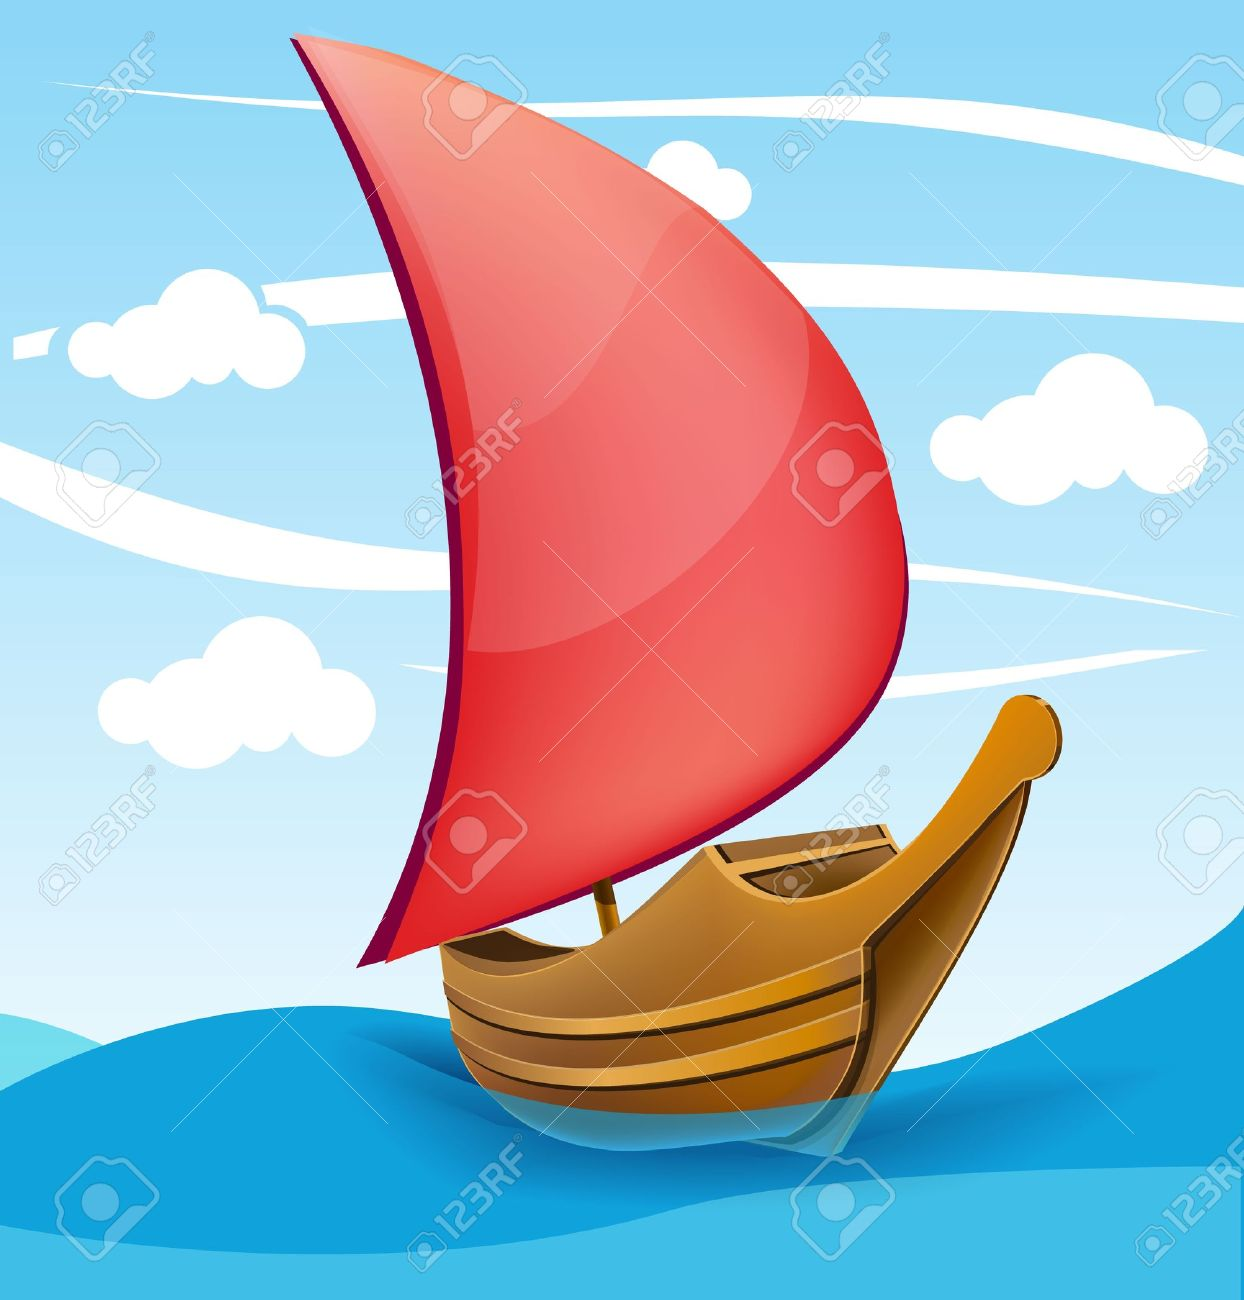 Romantic boat with red sail on a cloudy background Stock Vector - 18269528